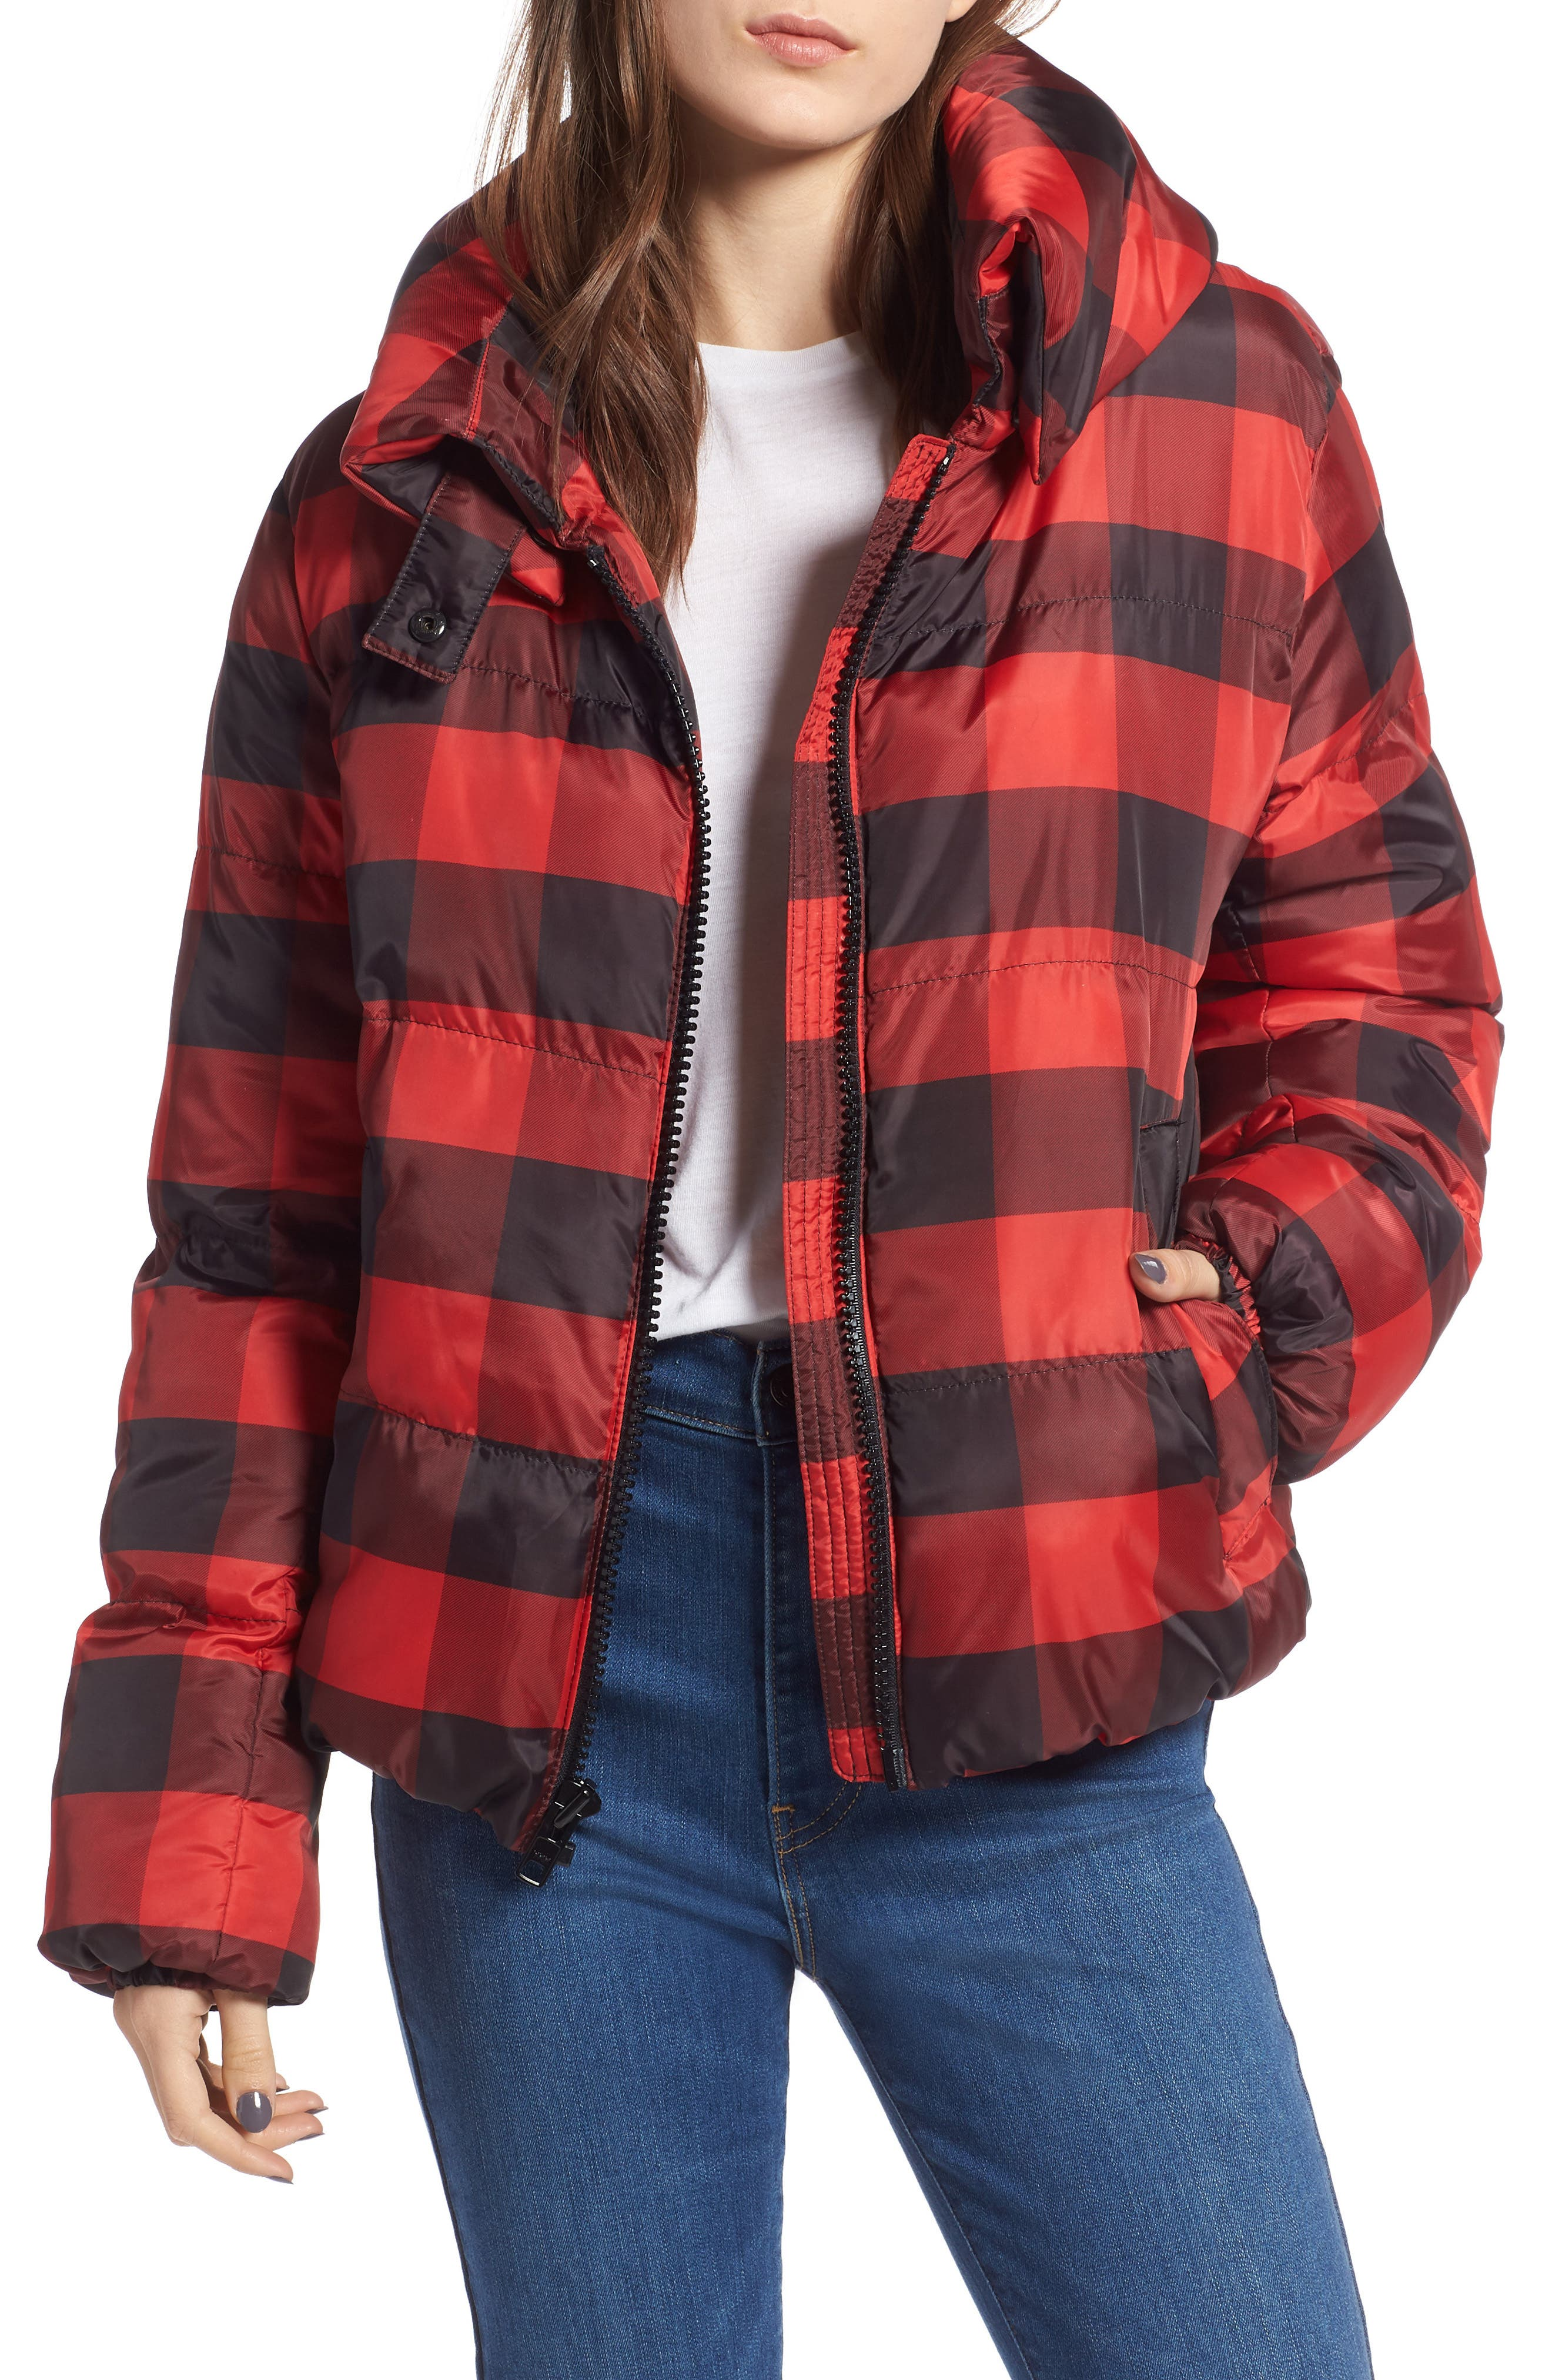 KENDALL + KYLIE Kendall And Kylie Oversized Plaid Puffer Coat in Red Plaid